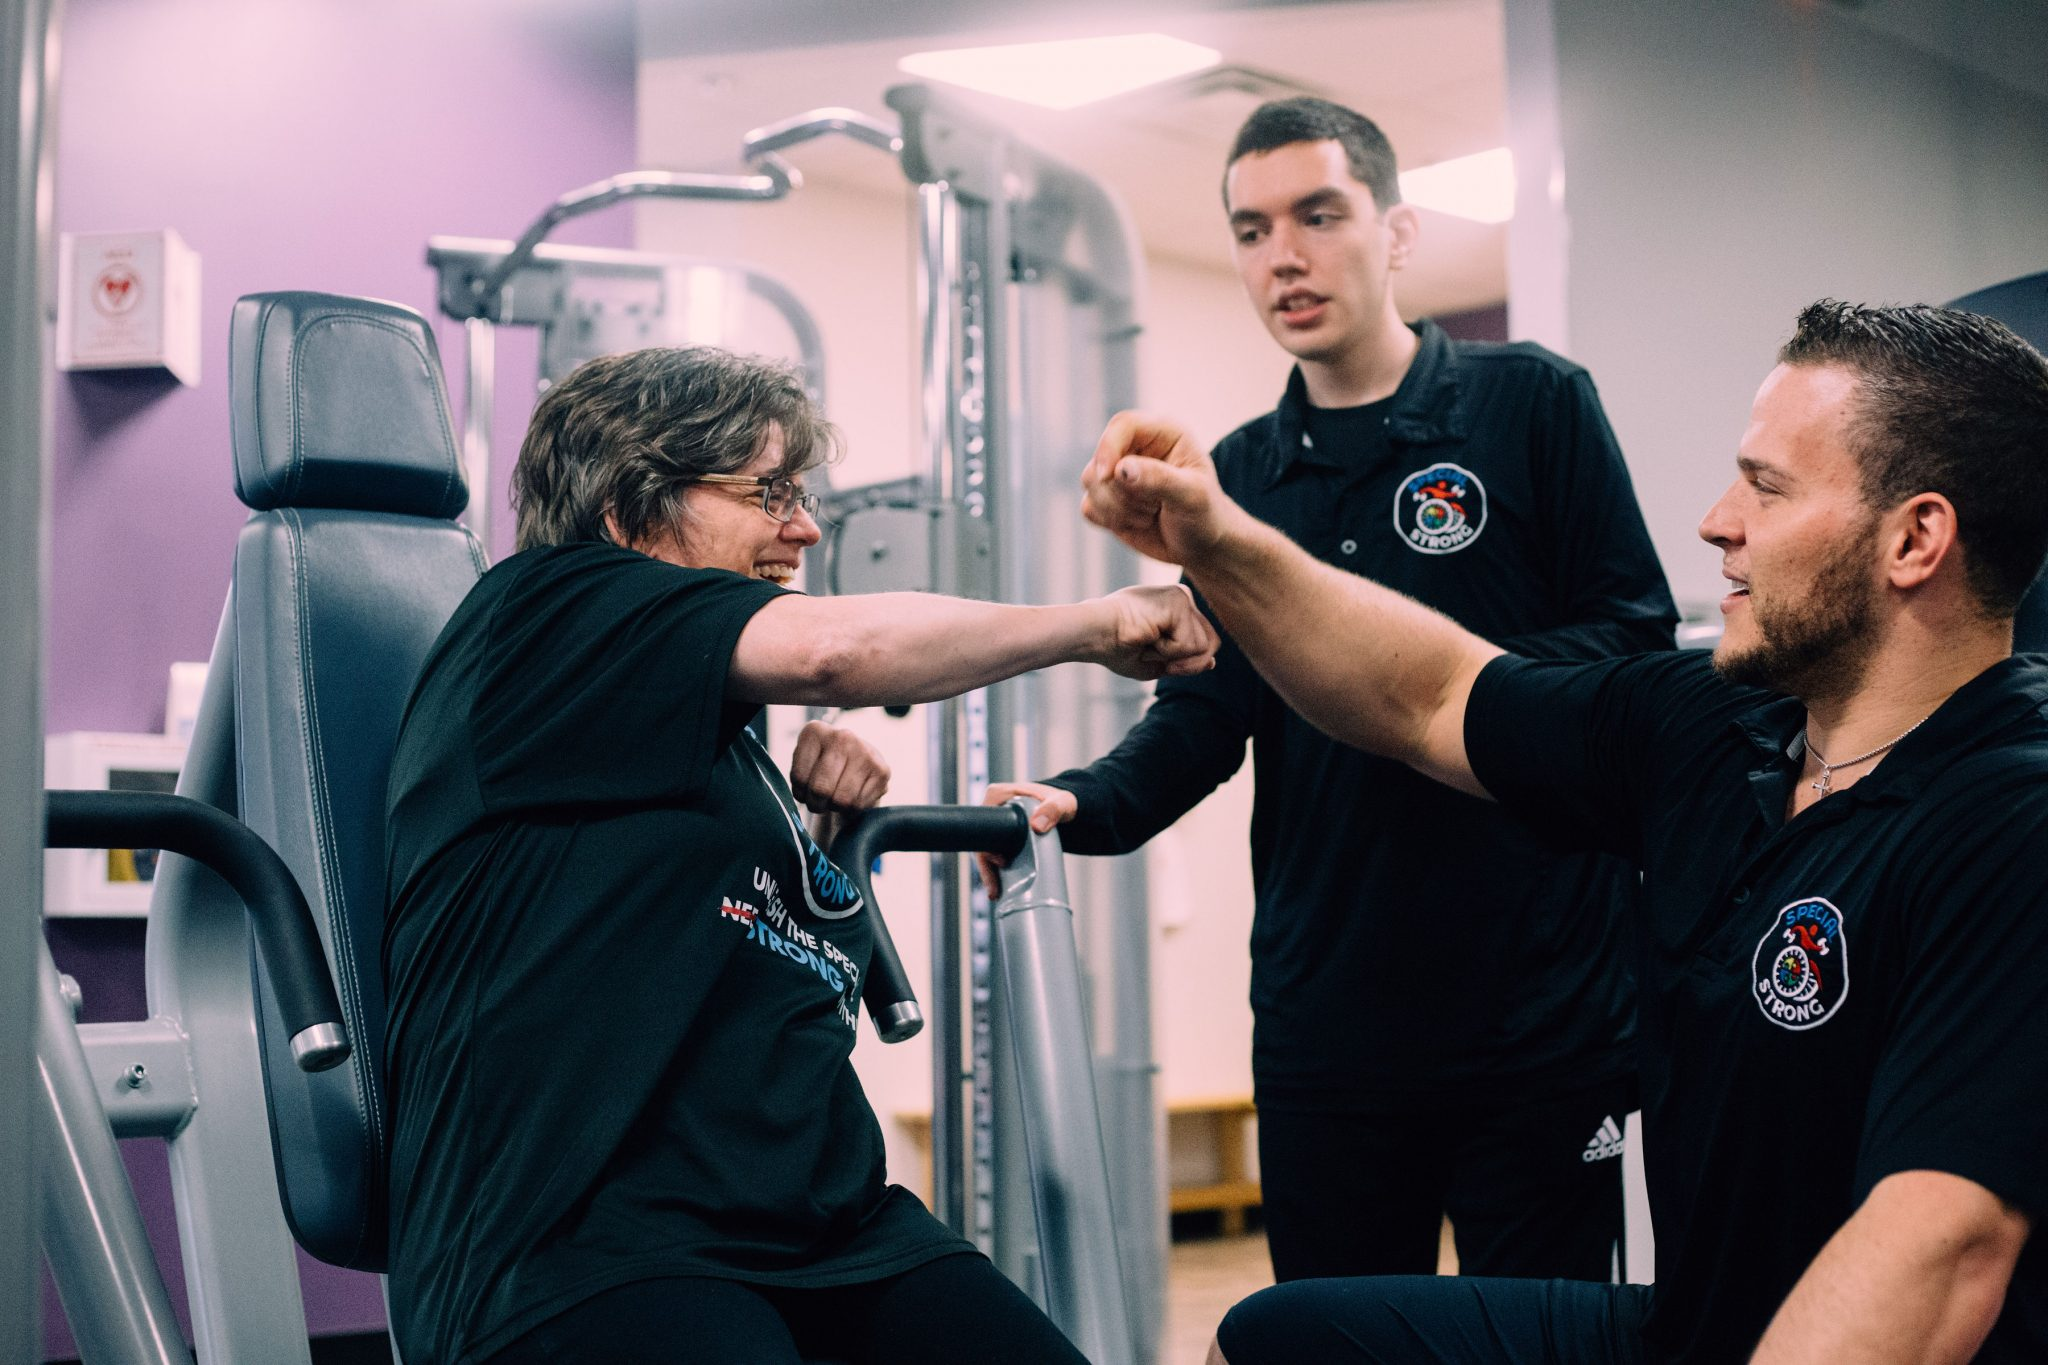 special strong adaptive fitness training fist bump